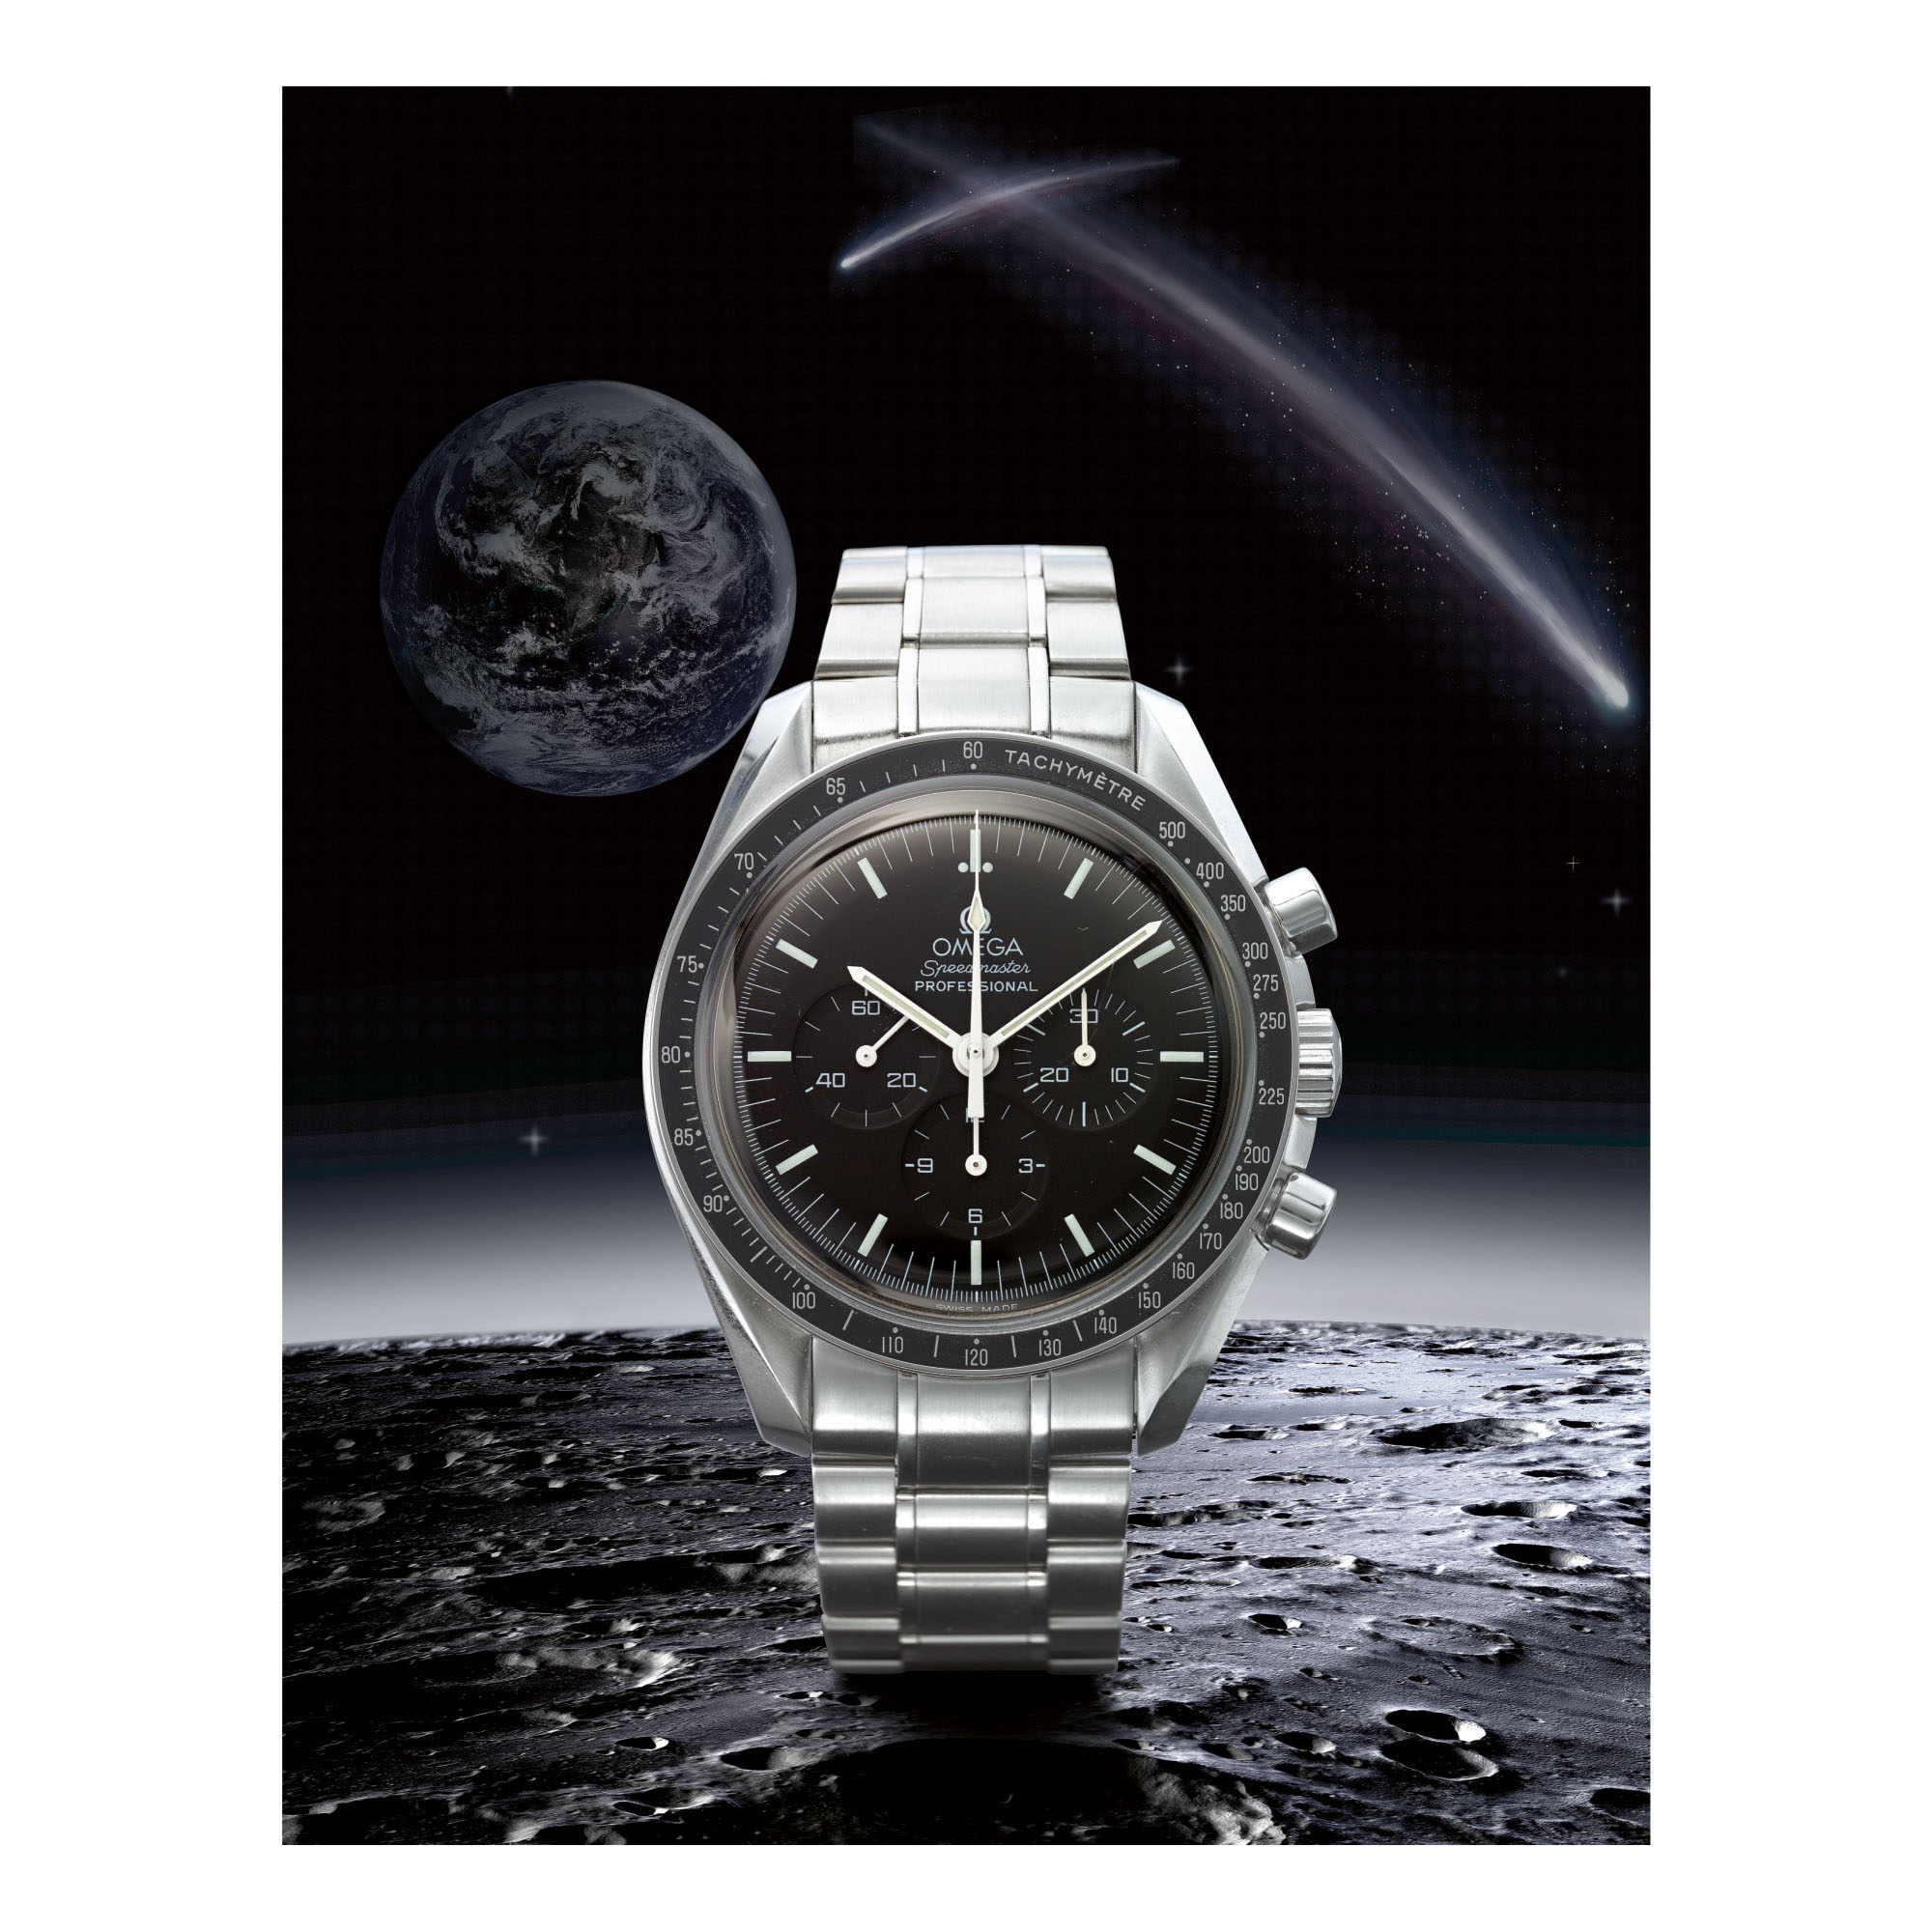 OMEGA | SPEEDMASTER REF 3570.50.00 'RED DOT',  A STAINLESS STEEL CHRONOGRAPH WRISTWATCH, MADE IN 2008